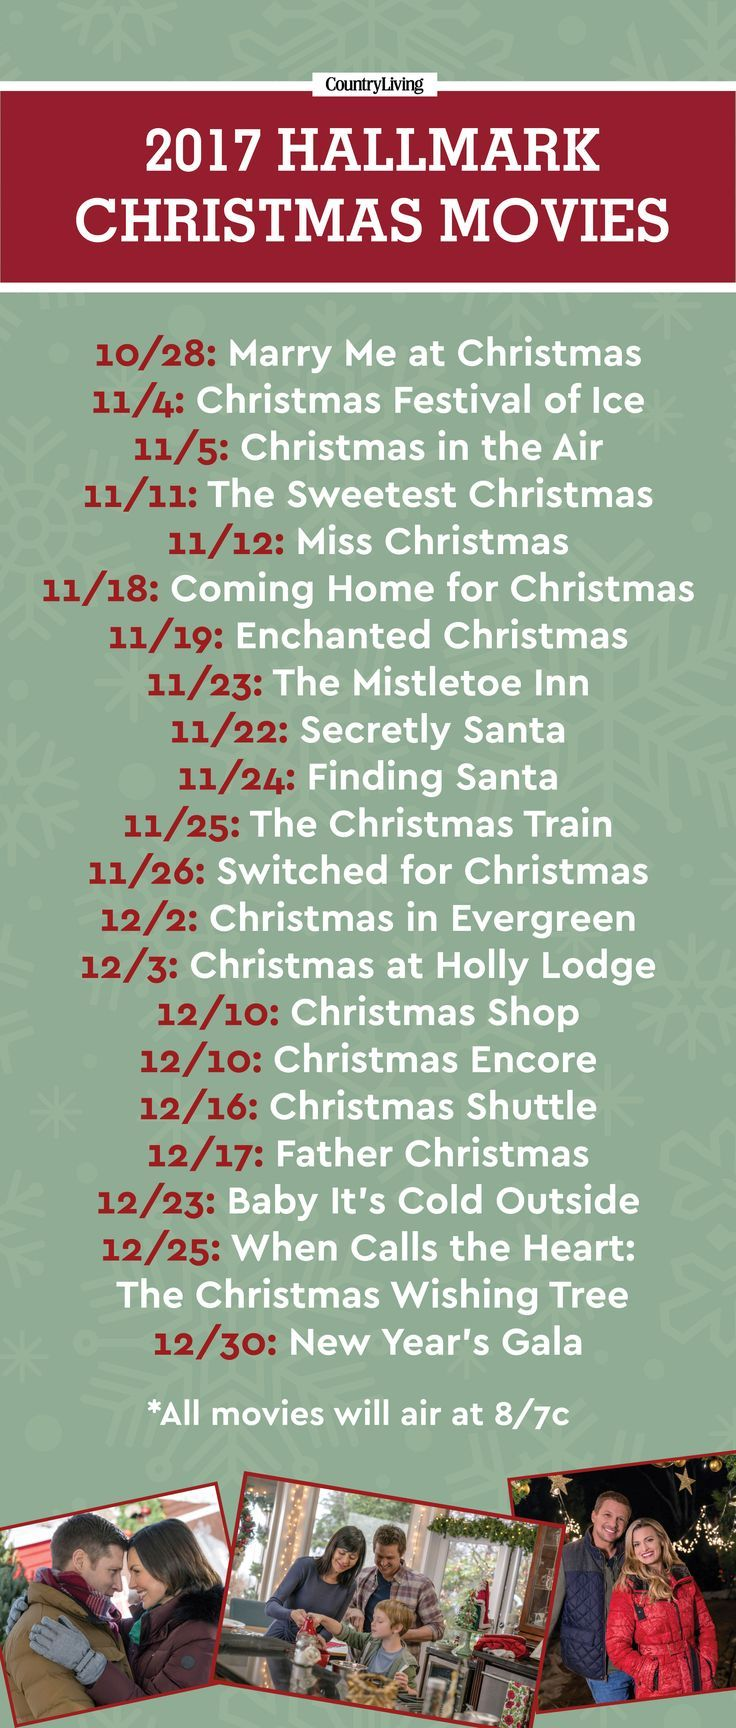 Just an FYI so you don't miss out! Hallmark will premiere 21 holiday films this year starring Candace Cameron Bure, Kimberly Williams-Paisley, Lacey Chabert, and more familiar favorites. Get your DVR ready now—the Christmas fun starts October 24!